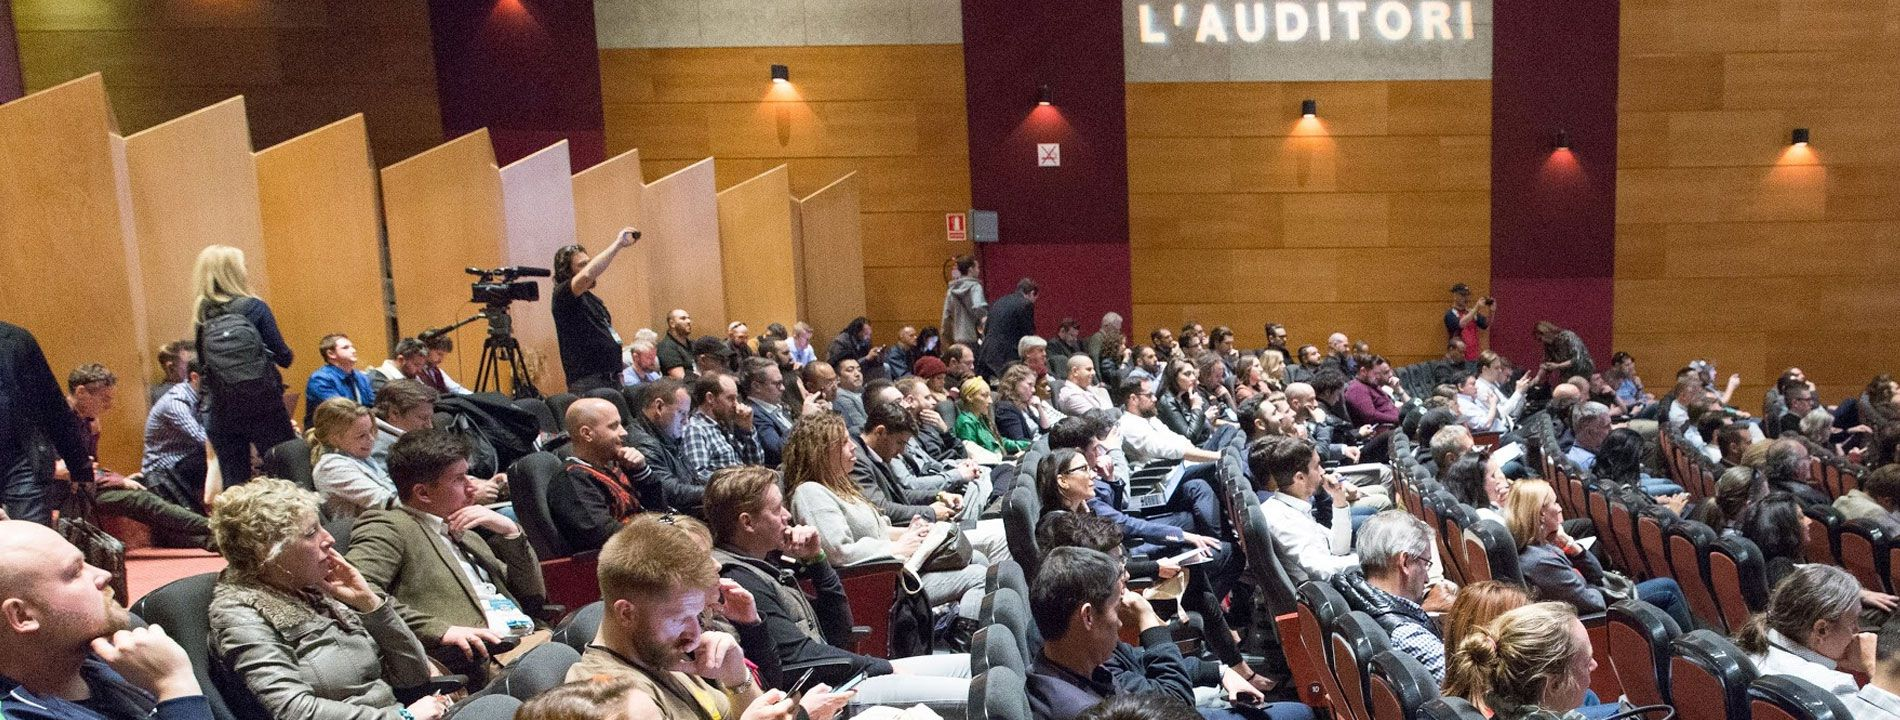 Barcelona International Cannabis Business Conference audience